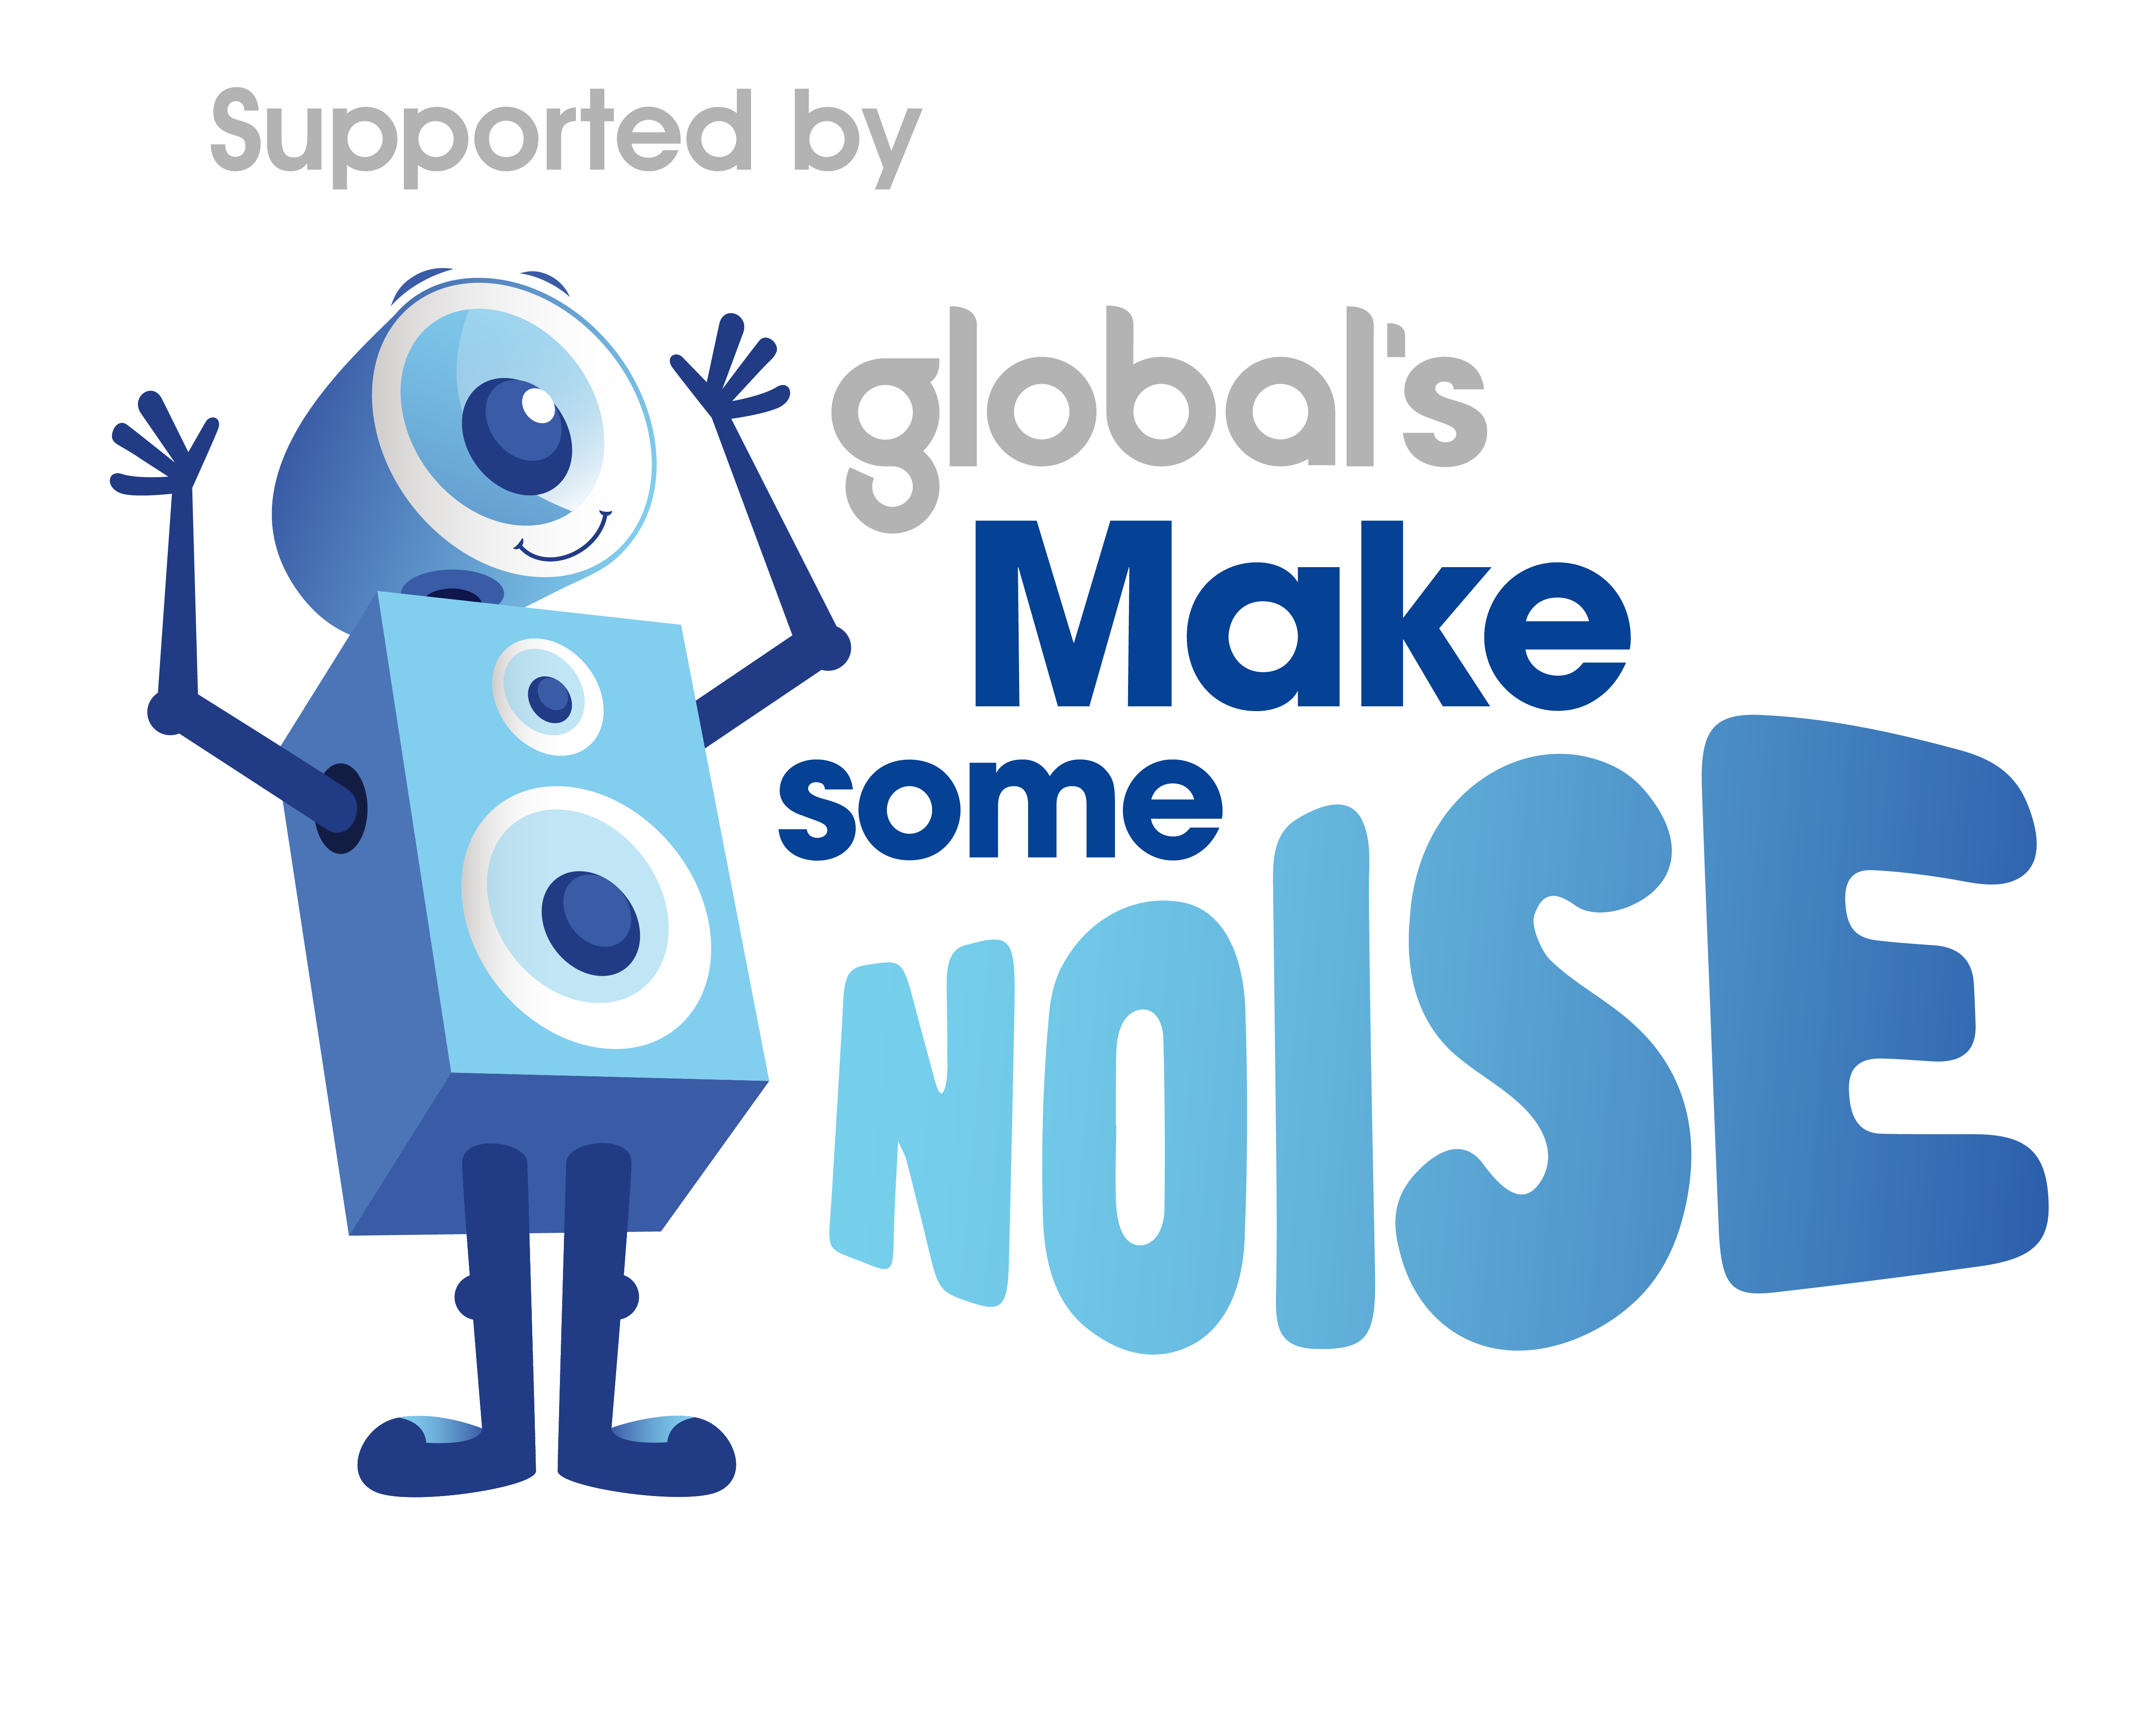 Supported by Global's Make Some Noise